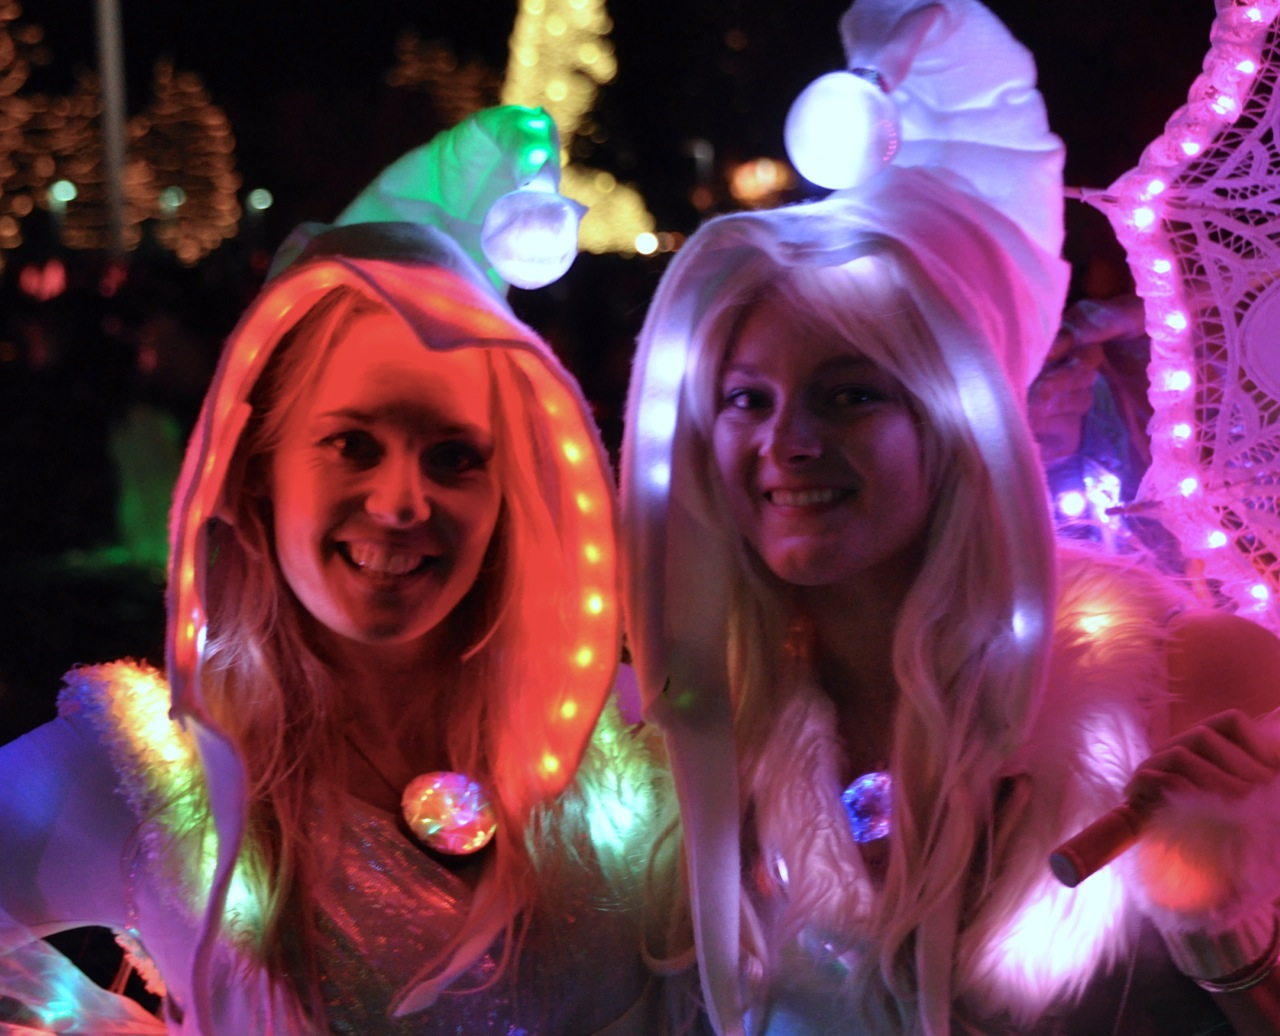 led_strips_elfhat_two.jpg